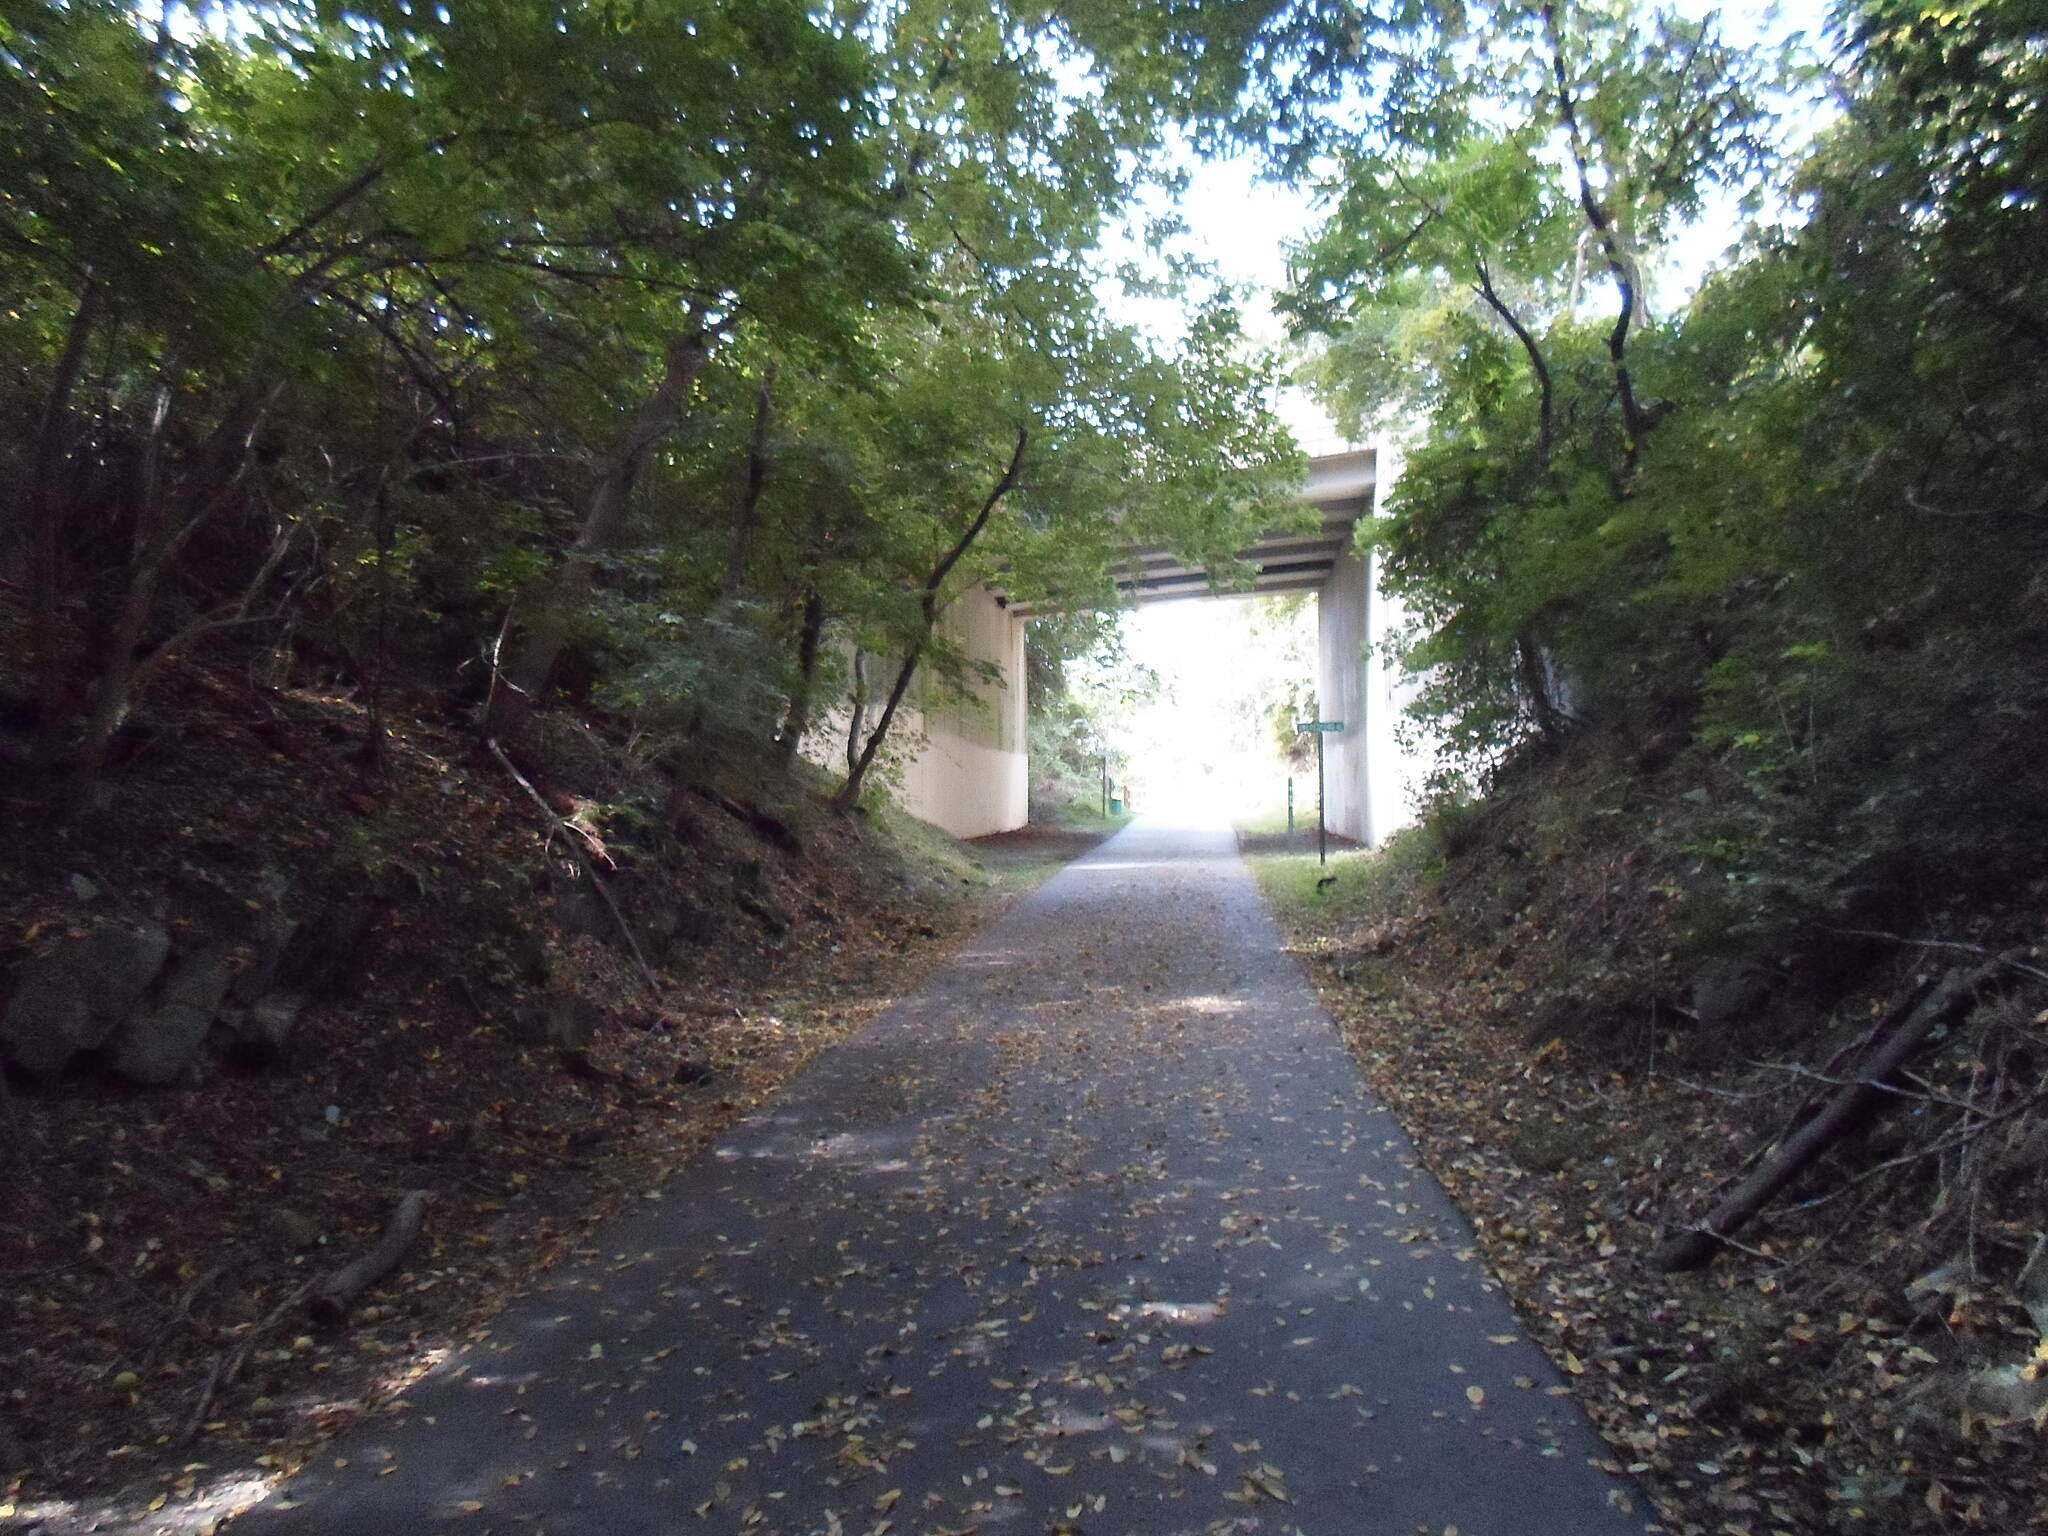 Chester Valley Trail Chester Valley Trail One of two underpasses that carry the trail beneath Swedesford Road, this one is located near Malvern. Taken September 2013.